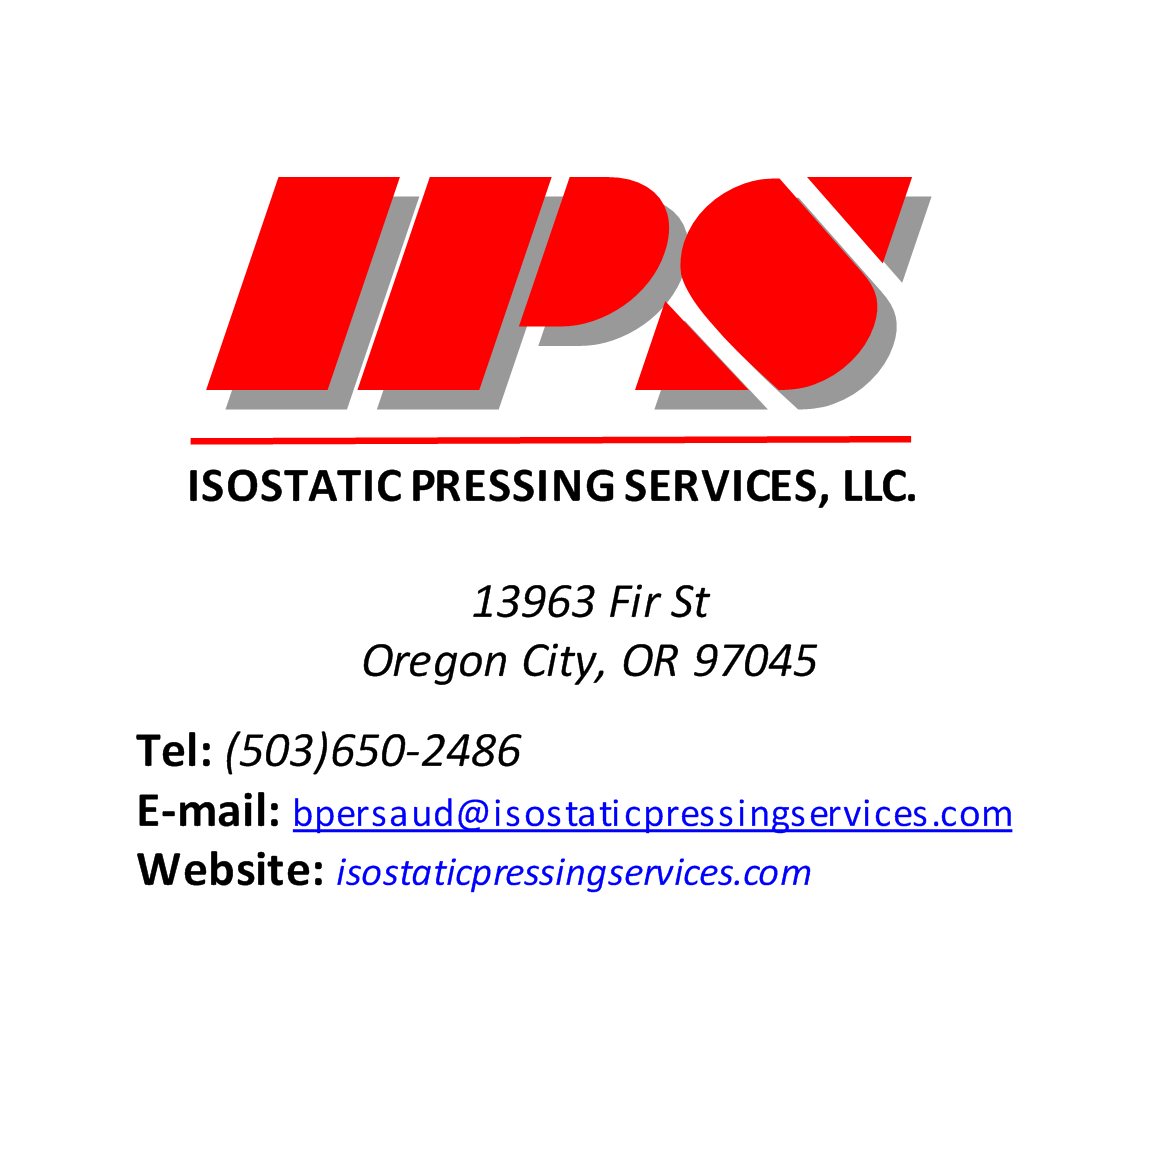 ips-logo-with-contact